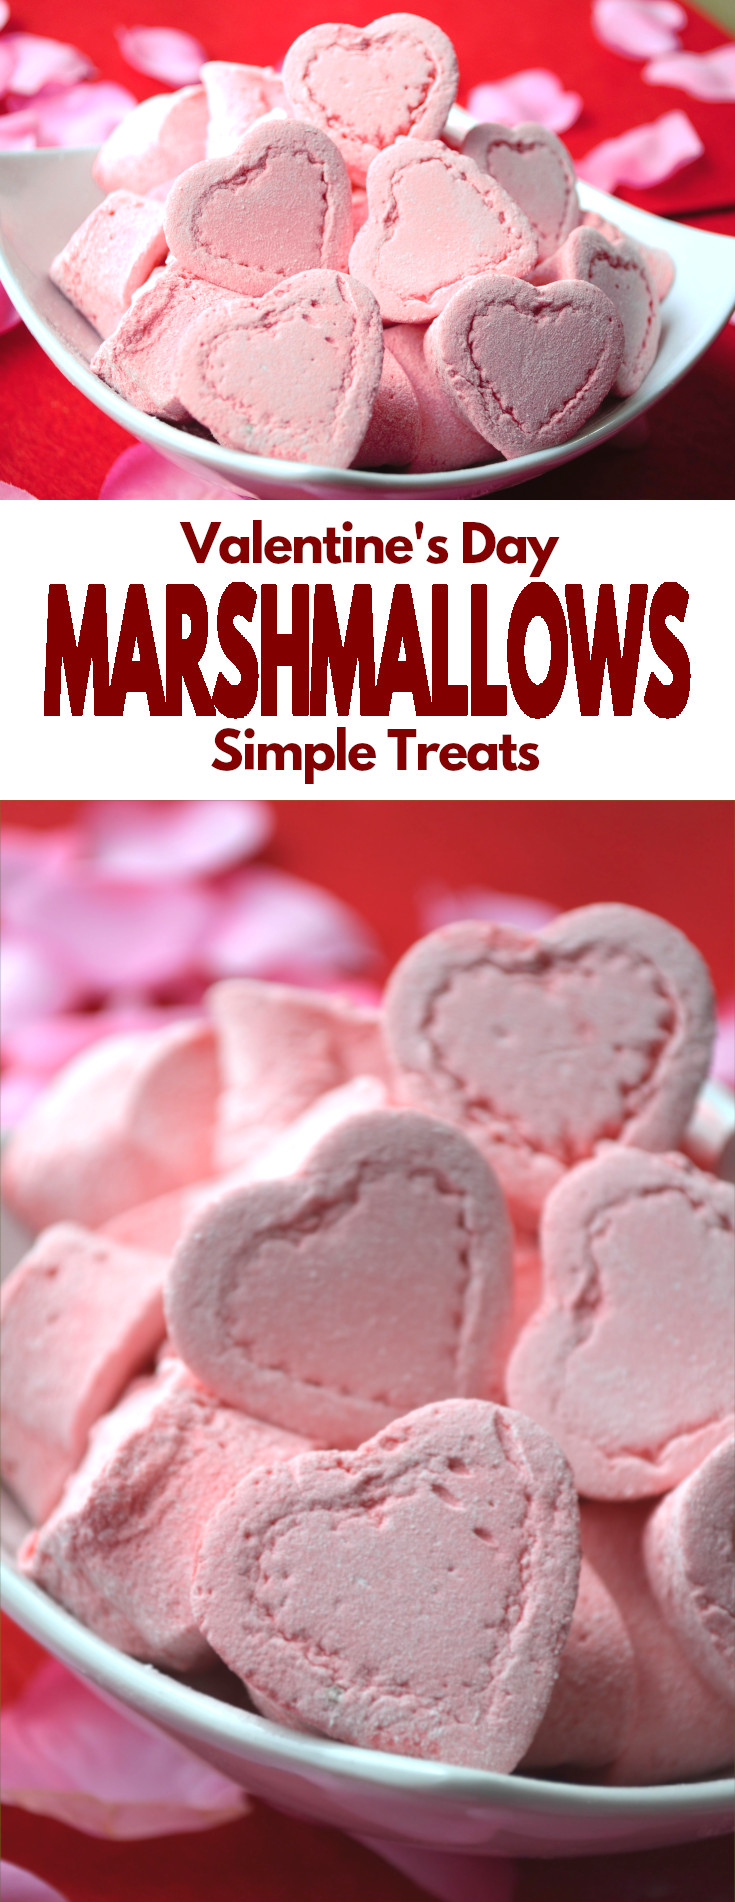 This simple, no-fail family recipe creates the most heavenly pillows of sweet, fluffy goodness, bursting with vanilla flavor that you'll never want to purchase another marshmallow again.